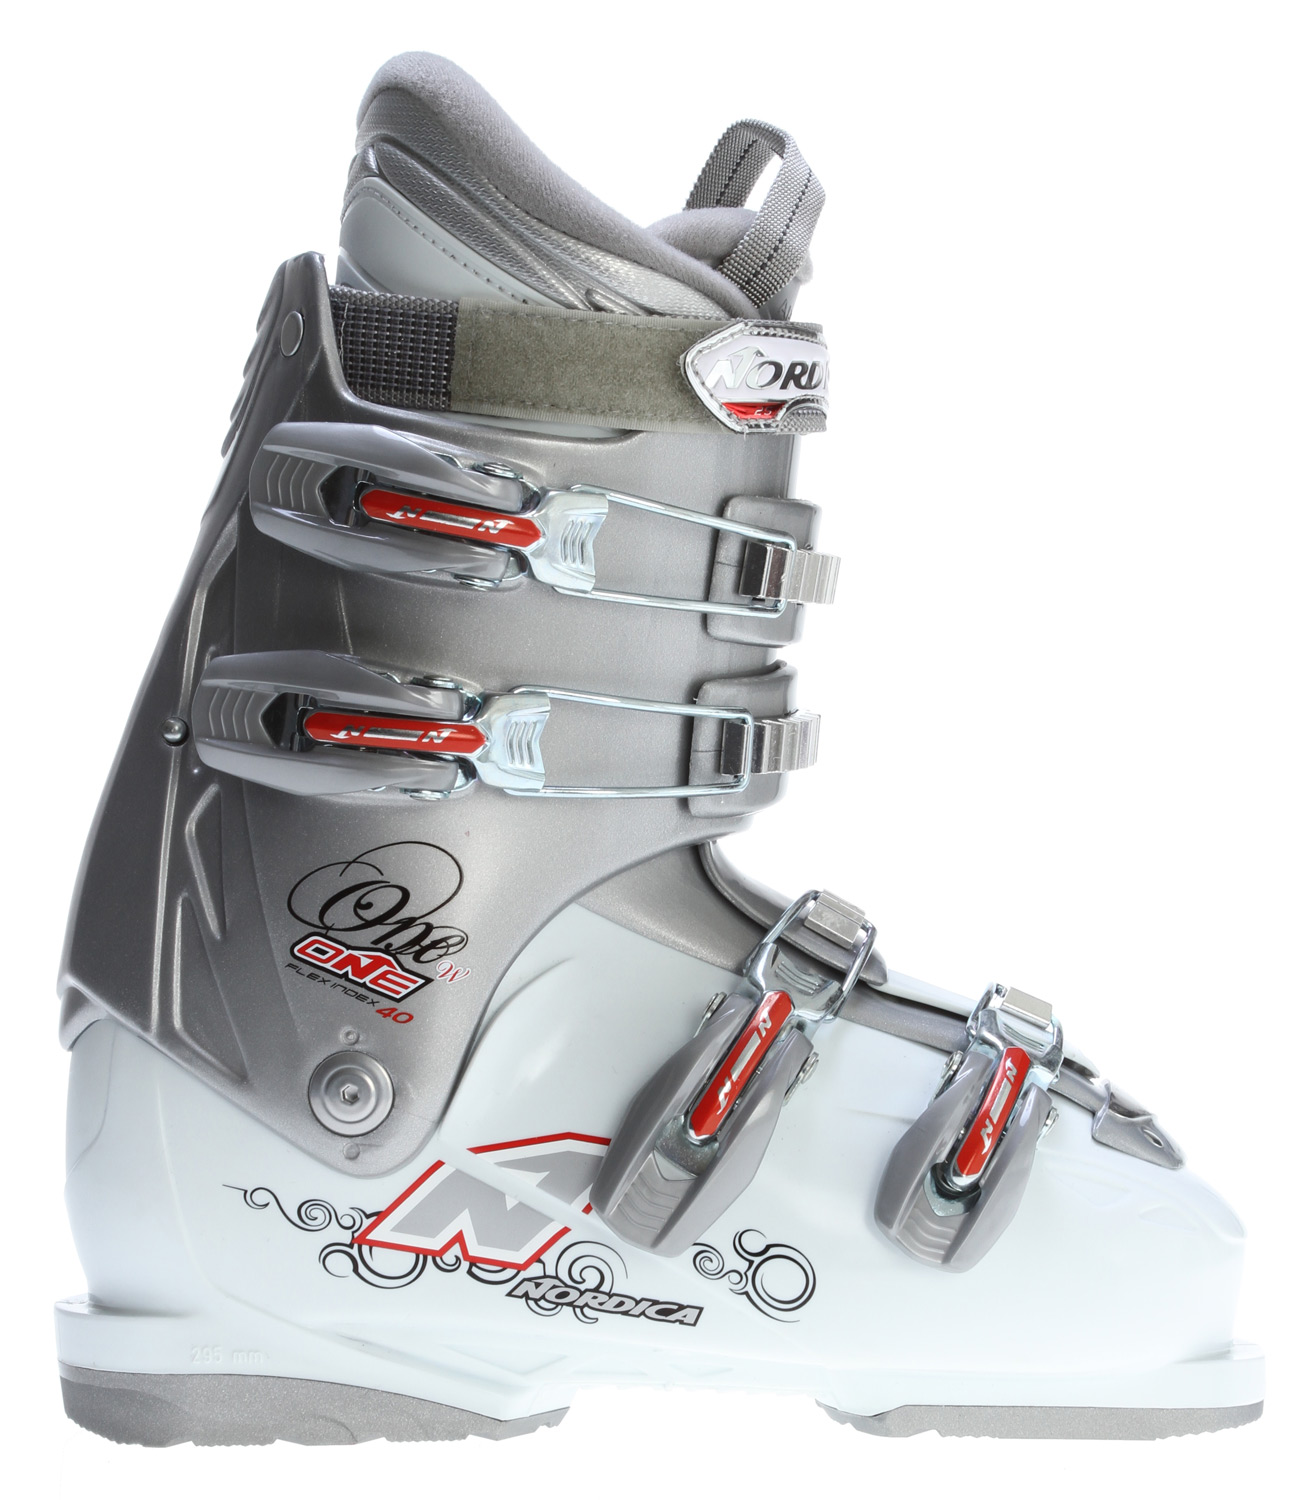 Ski Perfect combination of comfort and convenienceKey Features of the Nordica One 40 Ski Boots: 3D Comfort fit women's liner HP Slide IN PC Steel buckles Size range 23.5-27.5 MP Last 104mm - $134.95